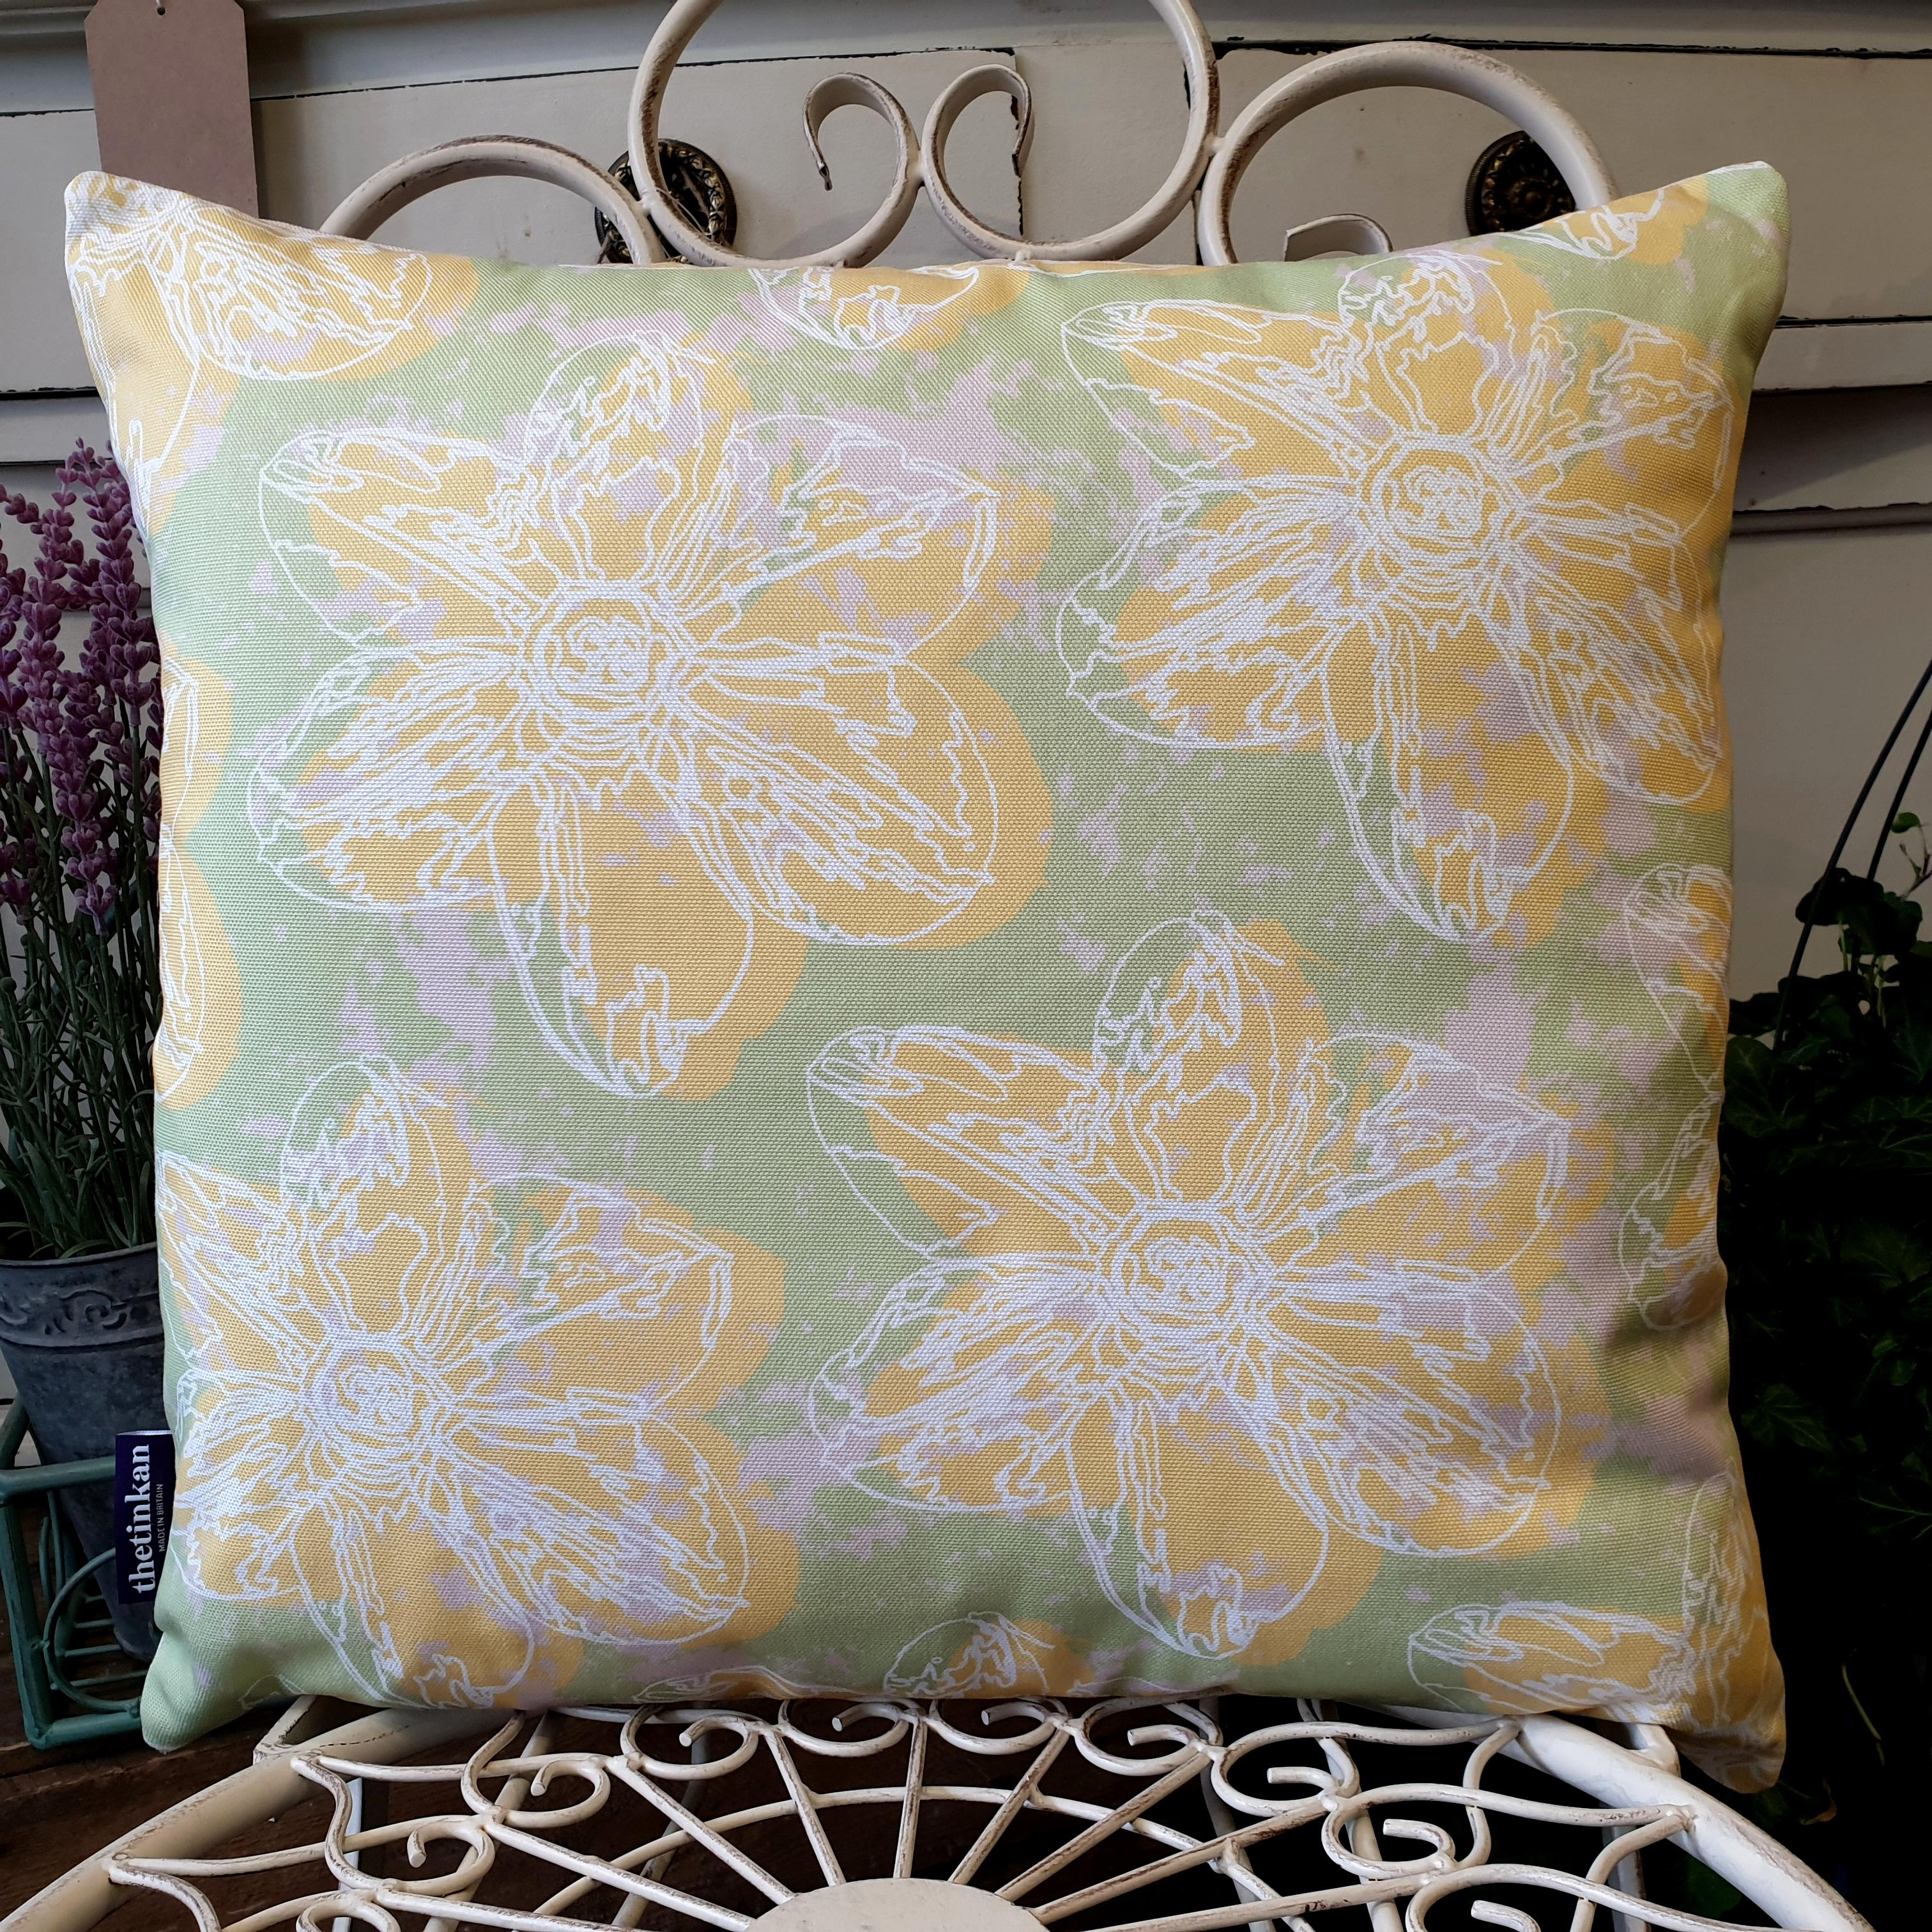 Double-sided 45cm square Flower Splash cushion designed by thetinkan. Yellow narcissus flower with white traced outline set within a mint green background with pale pink paint splashes. Available with an optional luxury cushion inner pad. VIEW PRODUCT >>